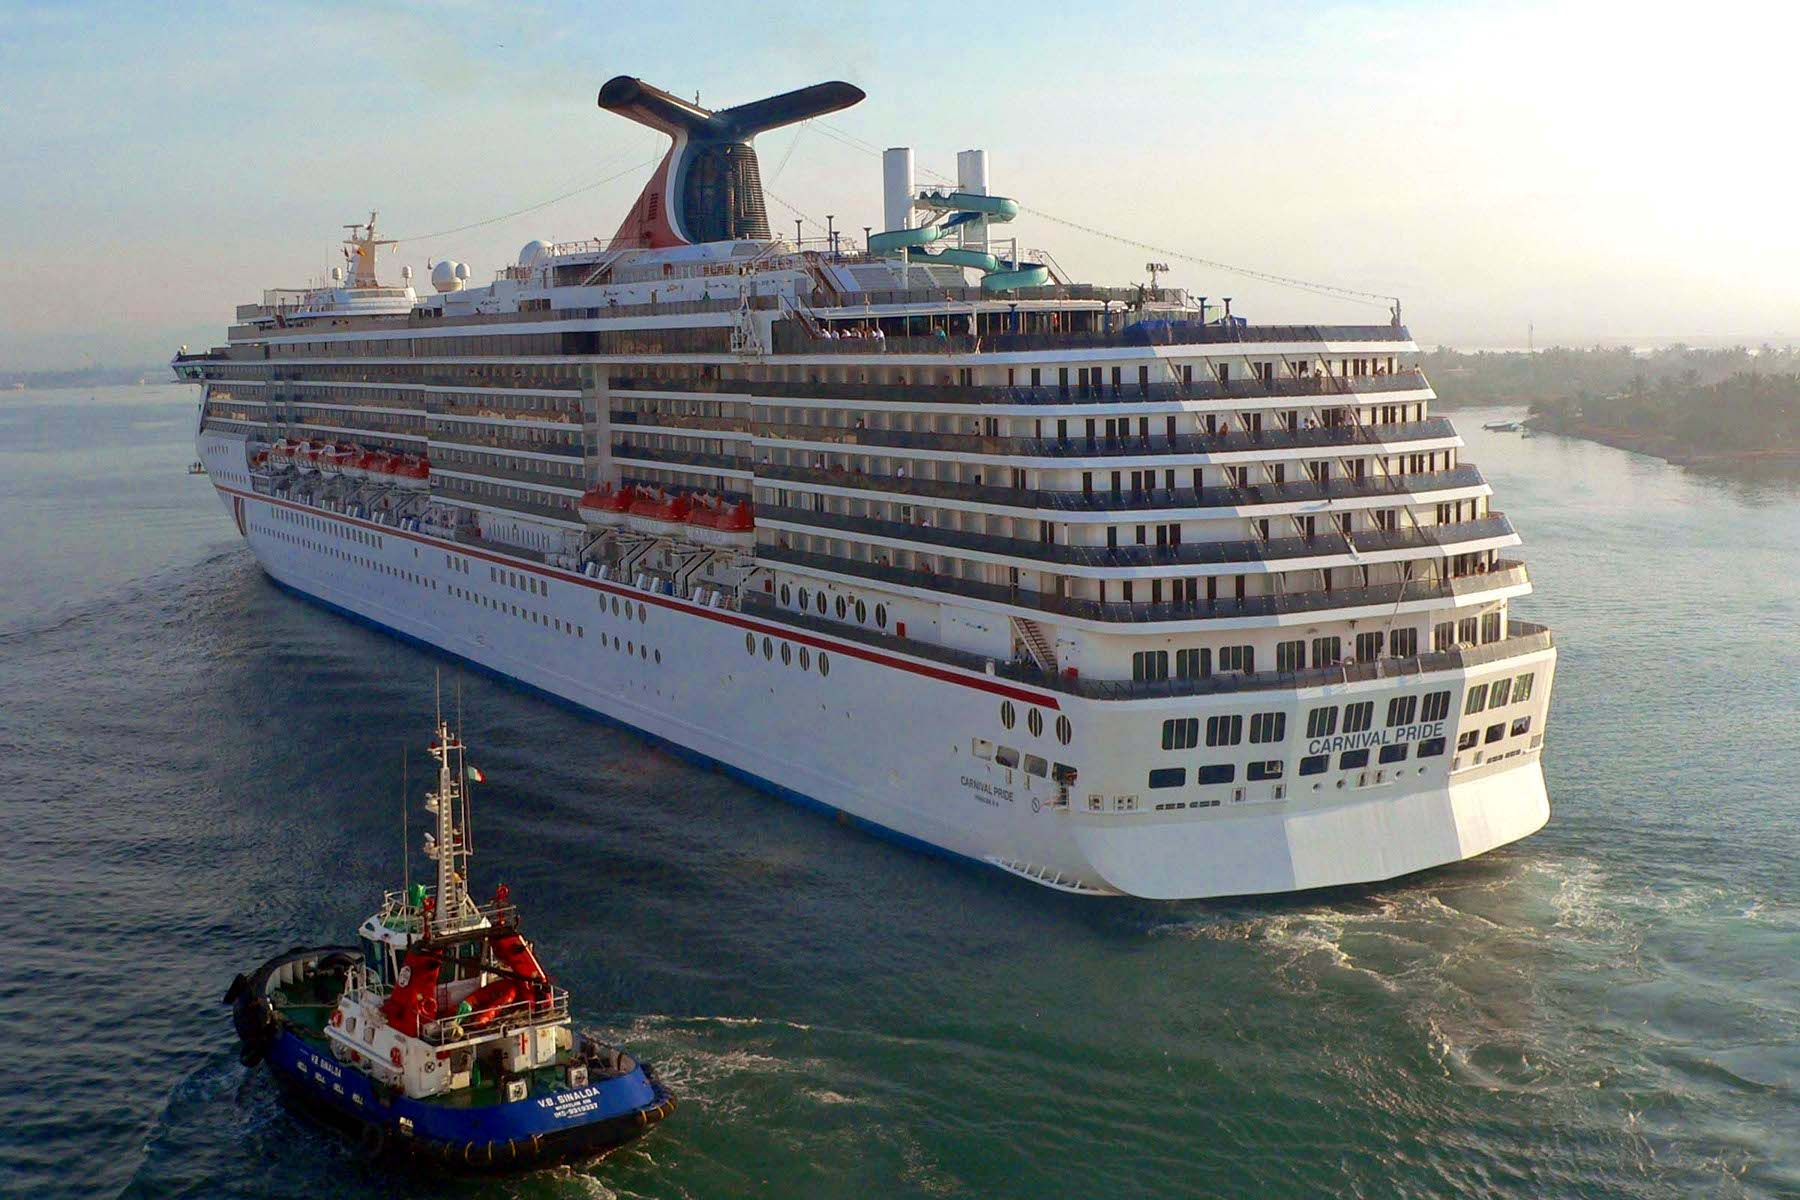 Days LODE Pinterest Cruises Carnival And Carnival Pride - Cruise ship finder app